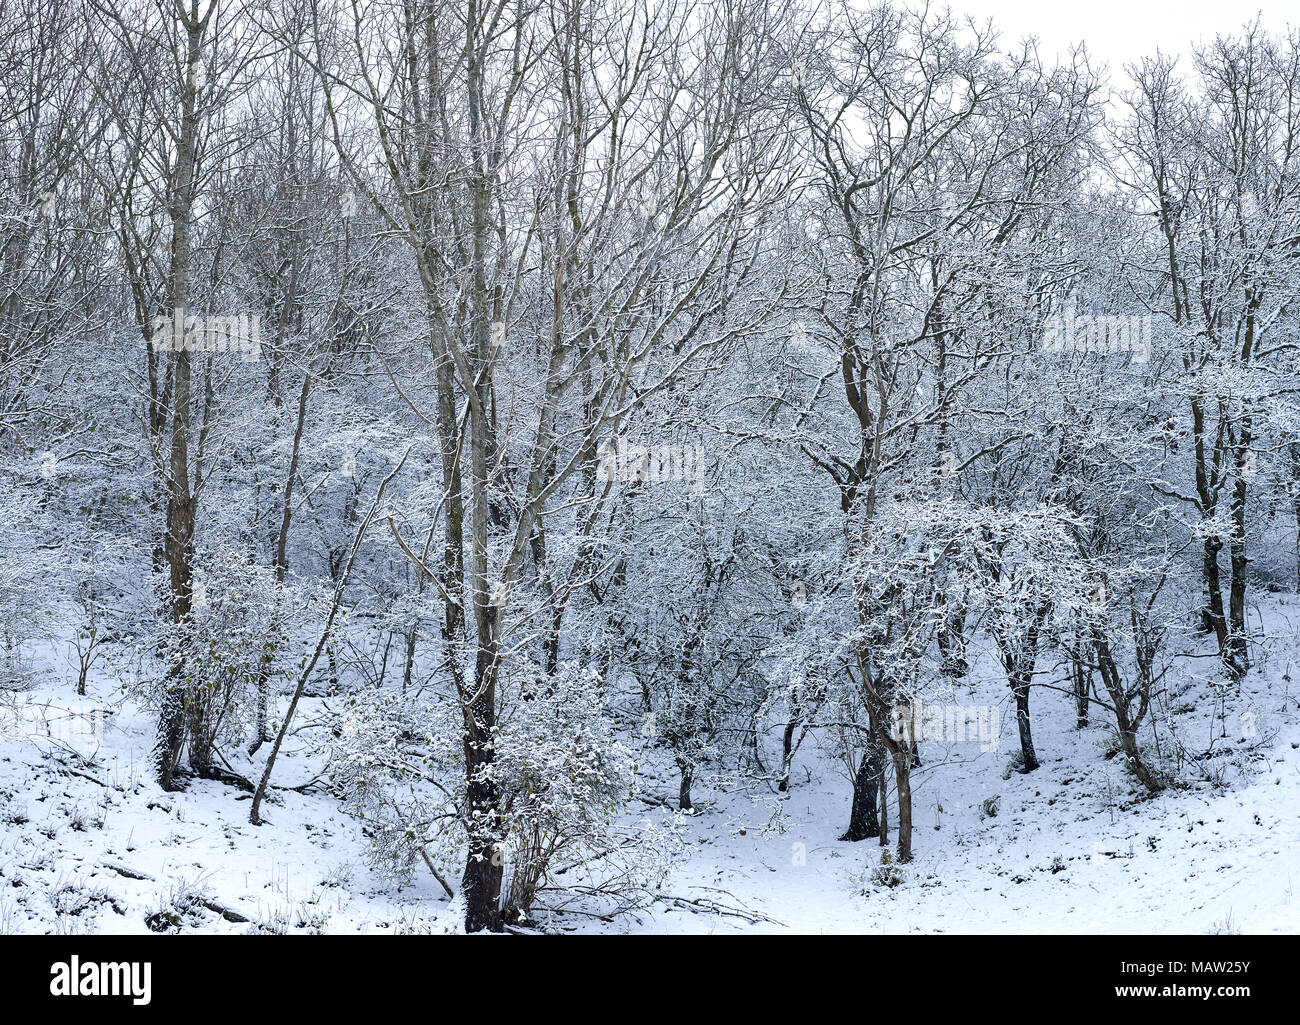 Forest landscape with trees covered with snow during wintertime in the dunes at the coast of The Hague, Netherlands. Westduinpark is a dune area - Stock Image